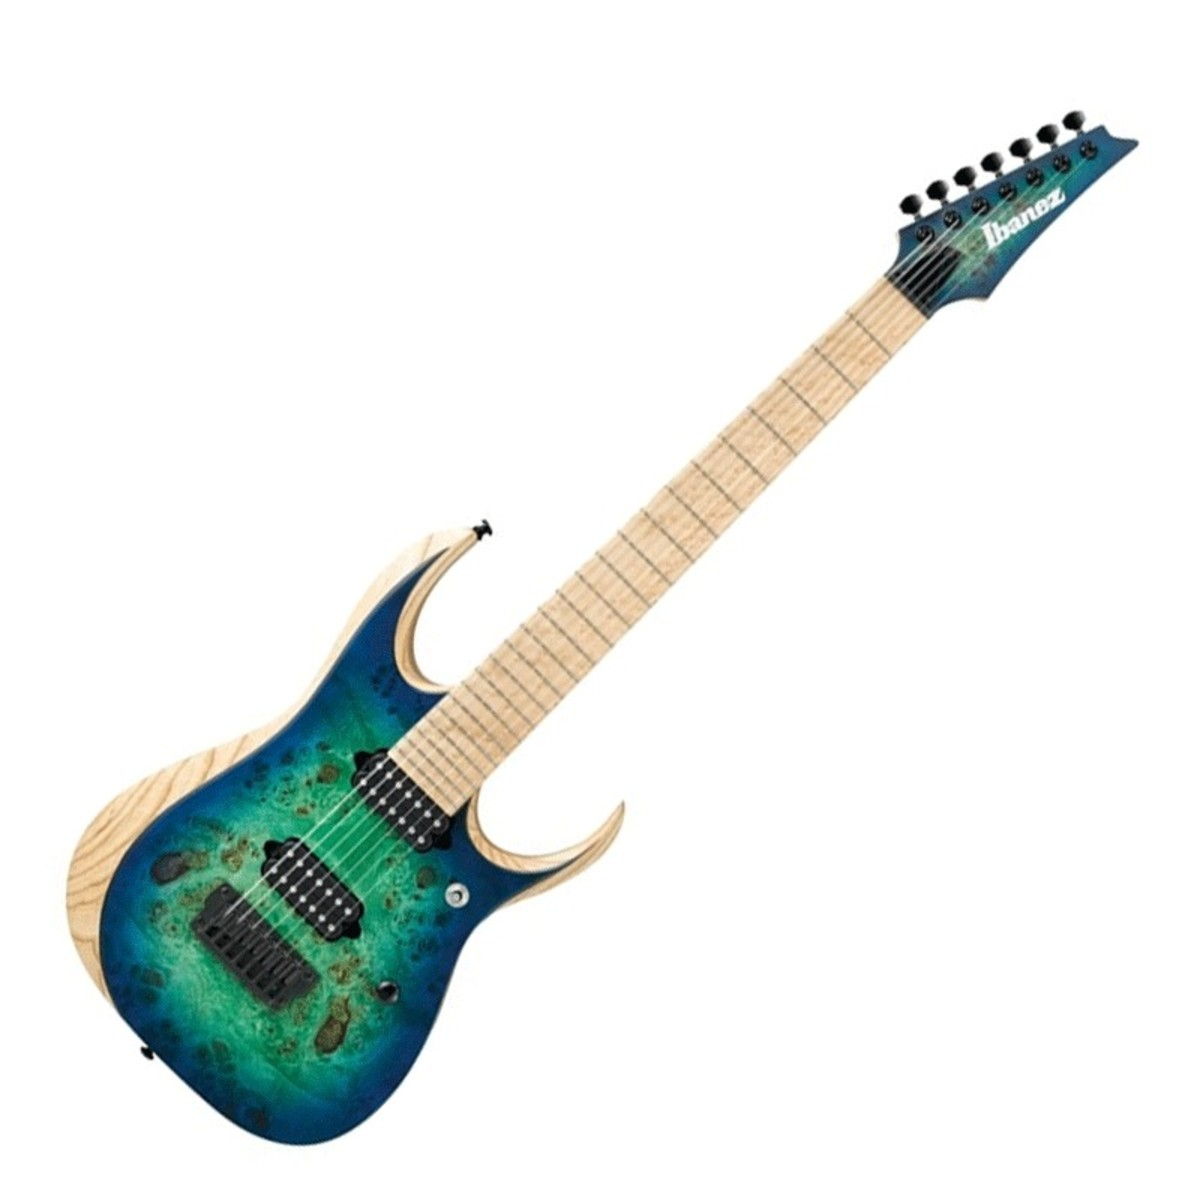 It's just a photo of Peaceful Ibanez Iron Label Rgdix6